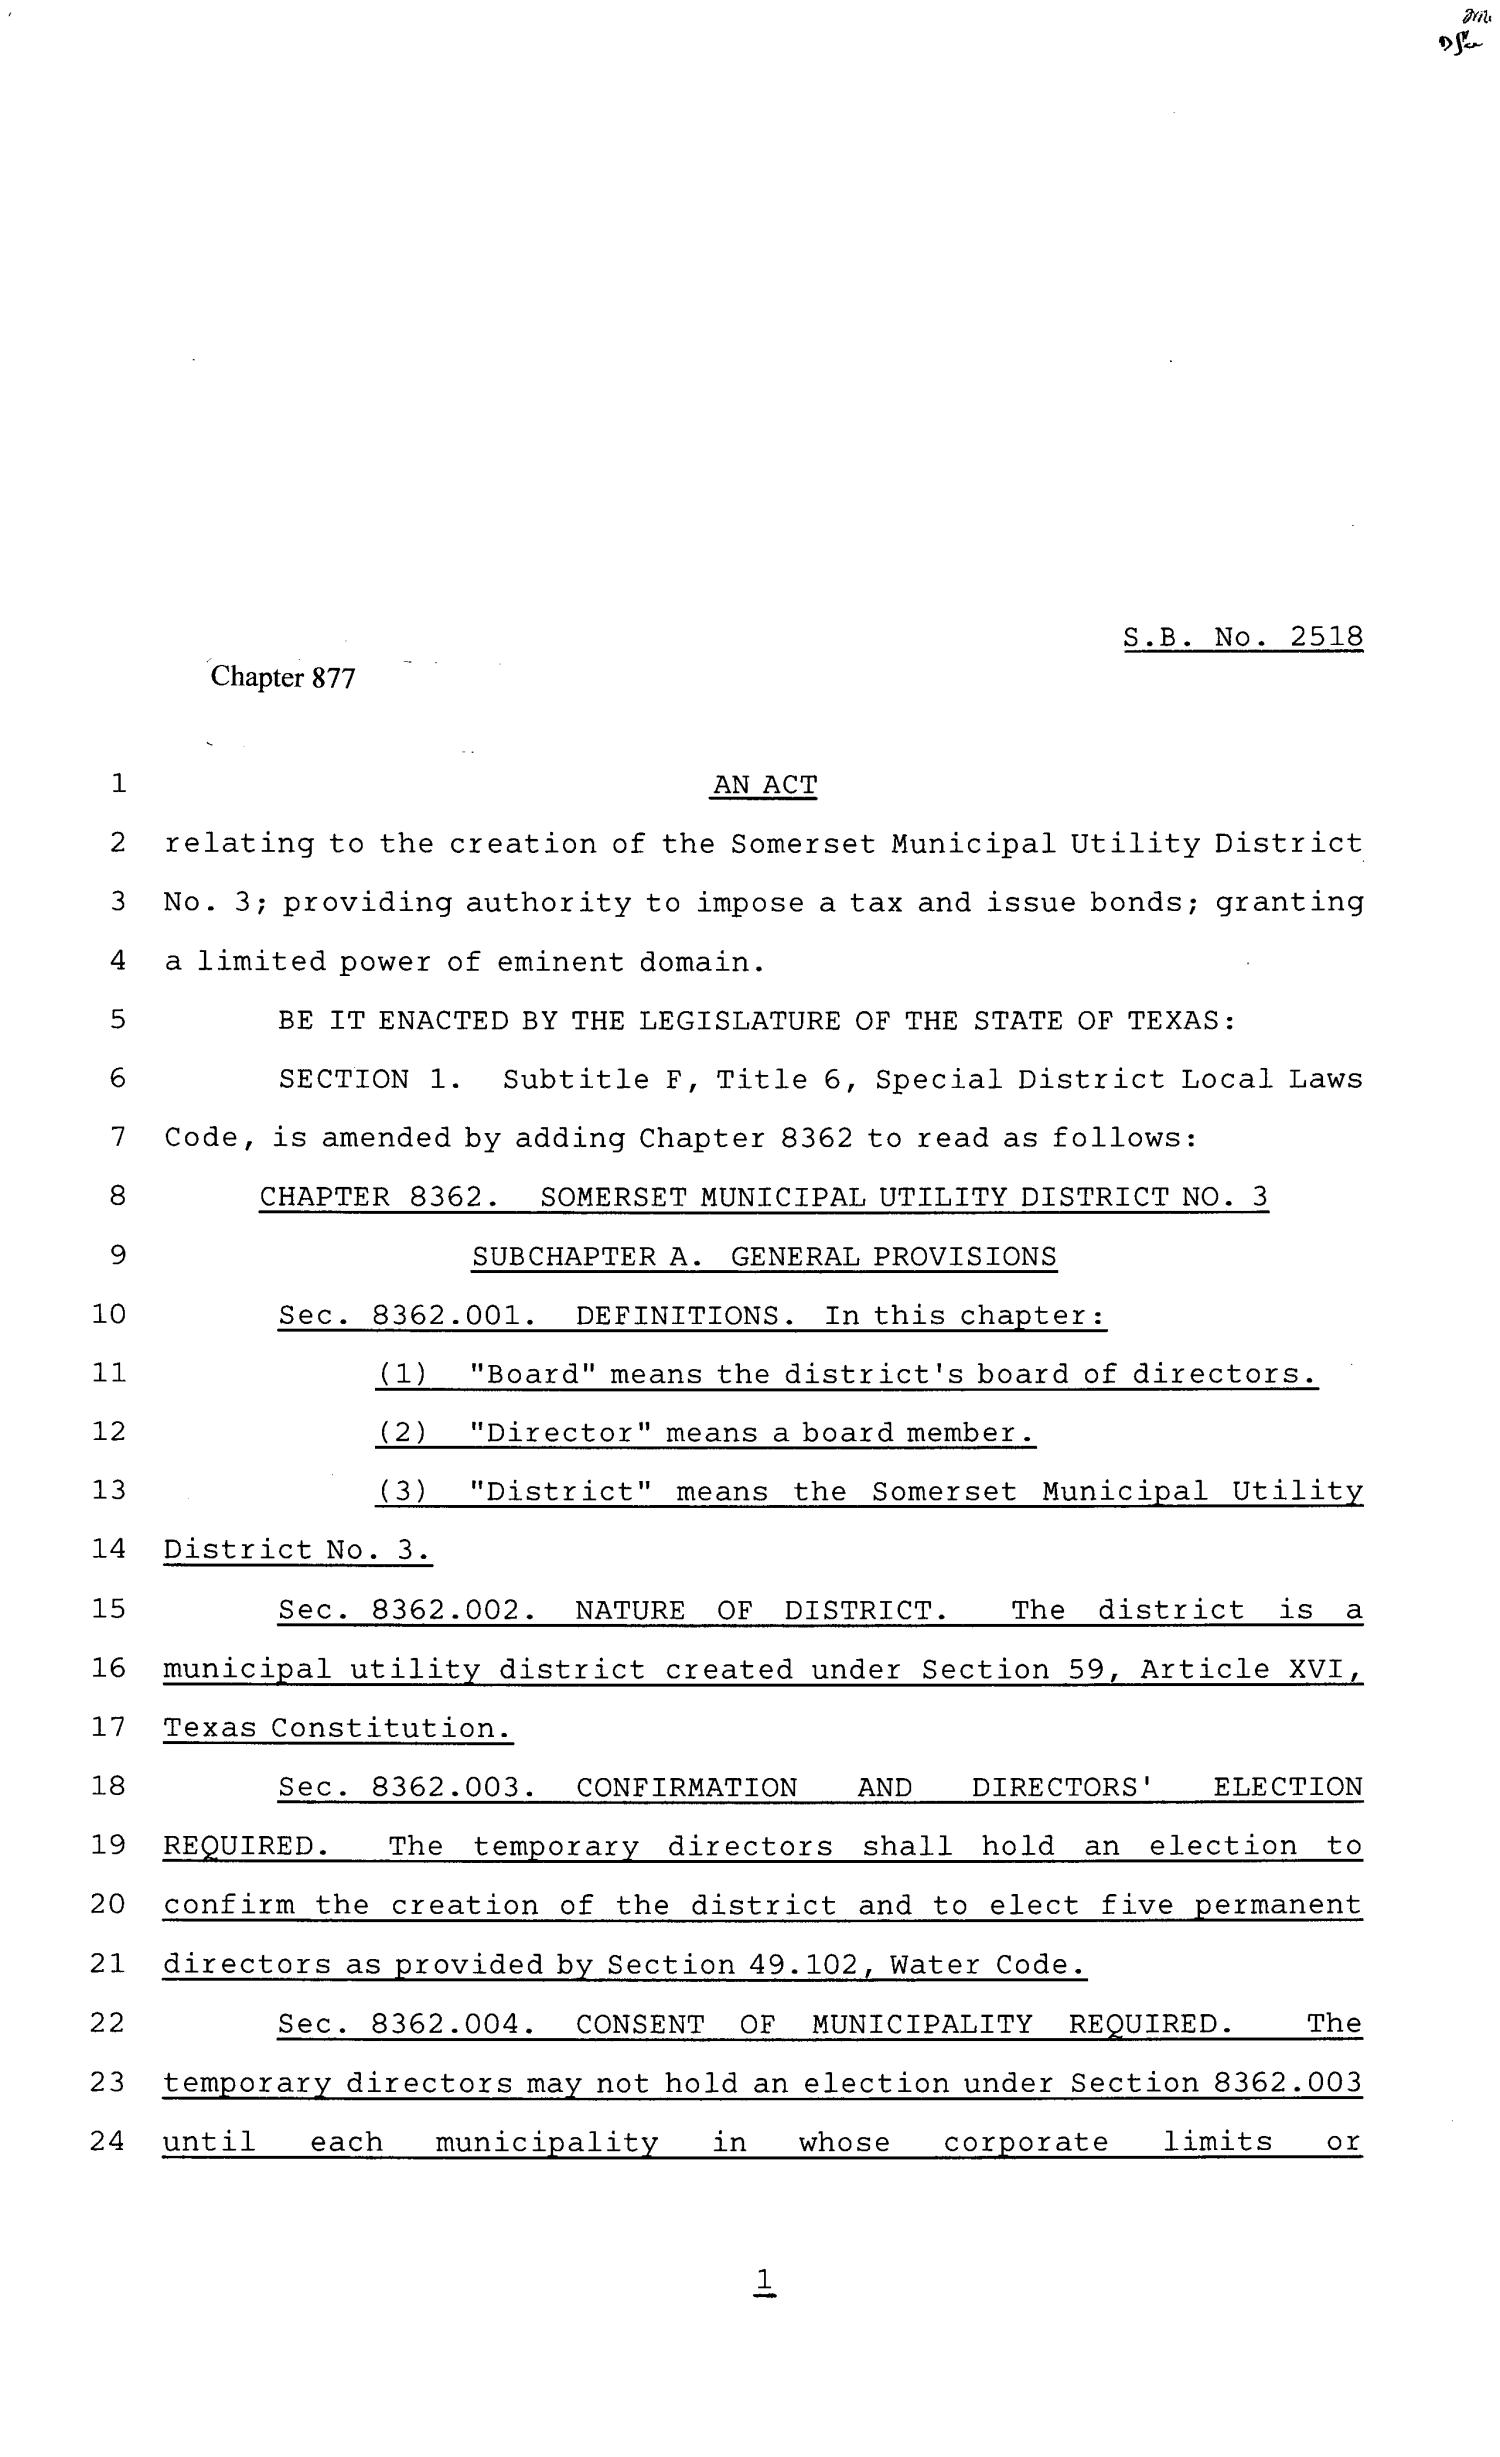 81st Texas Legislature, Senate Bill 2518, Chapter 877                                                                                                      [Sequence #]: 1 of 57